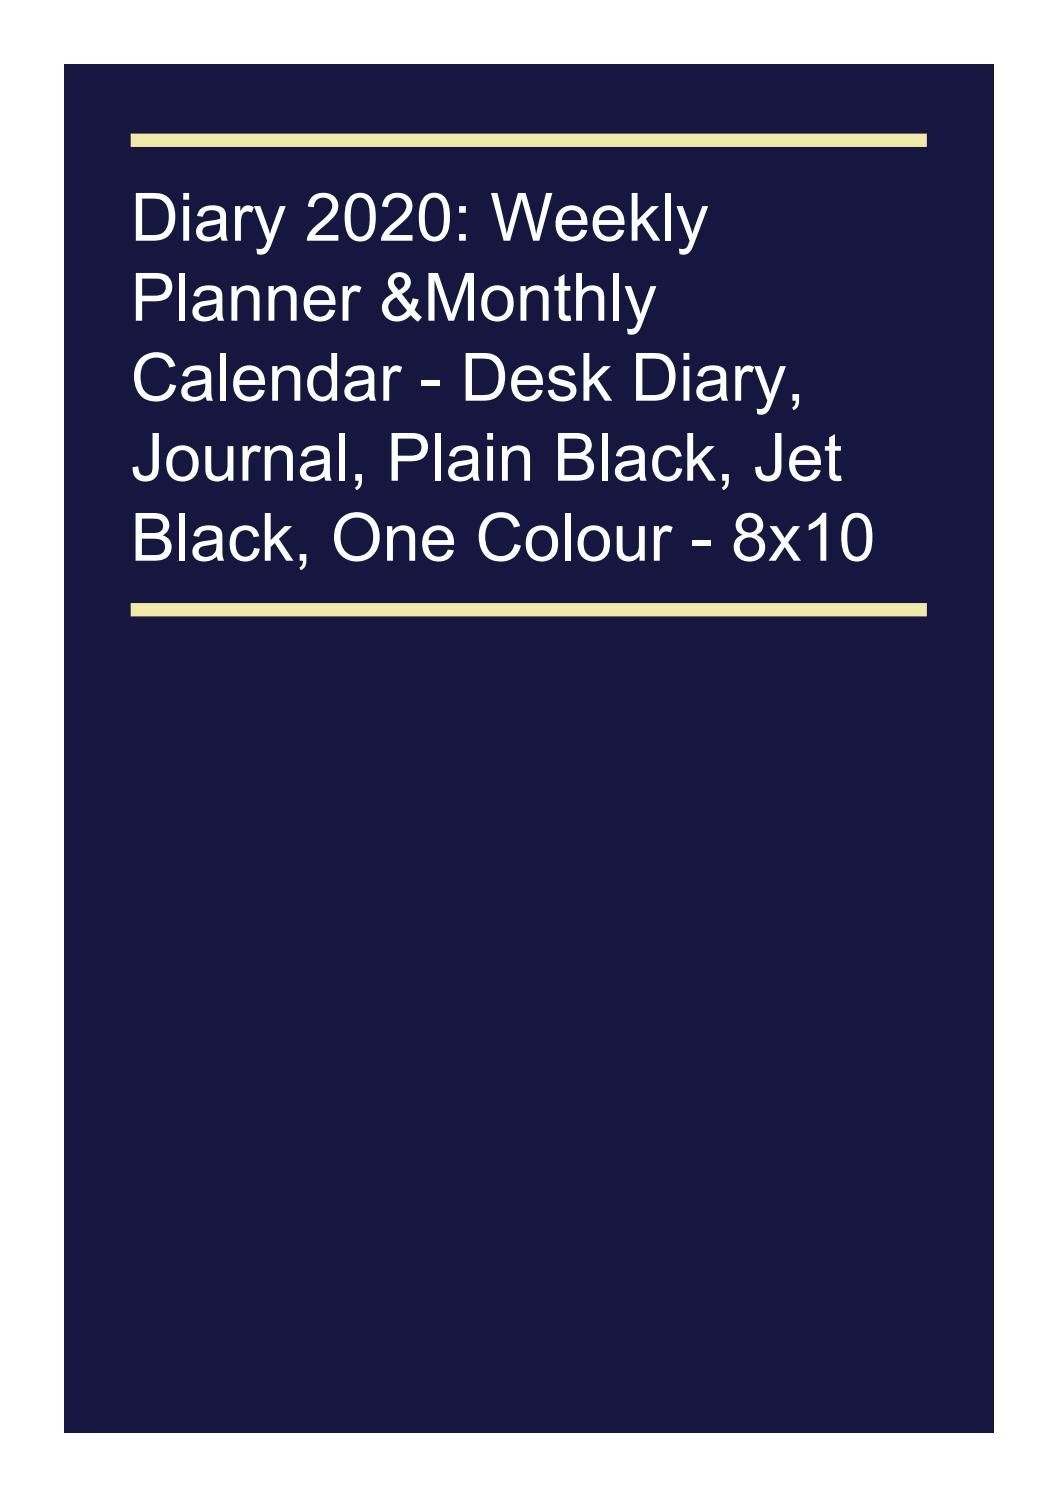 download* diary 2020: weekly planner & monthly calendar